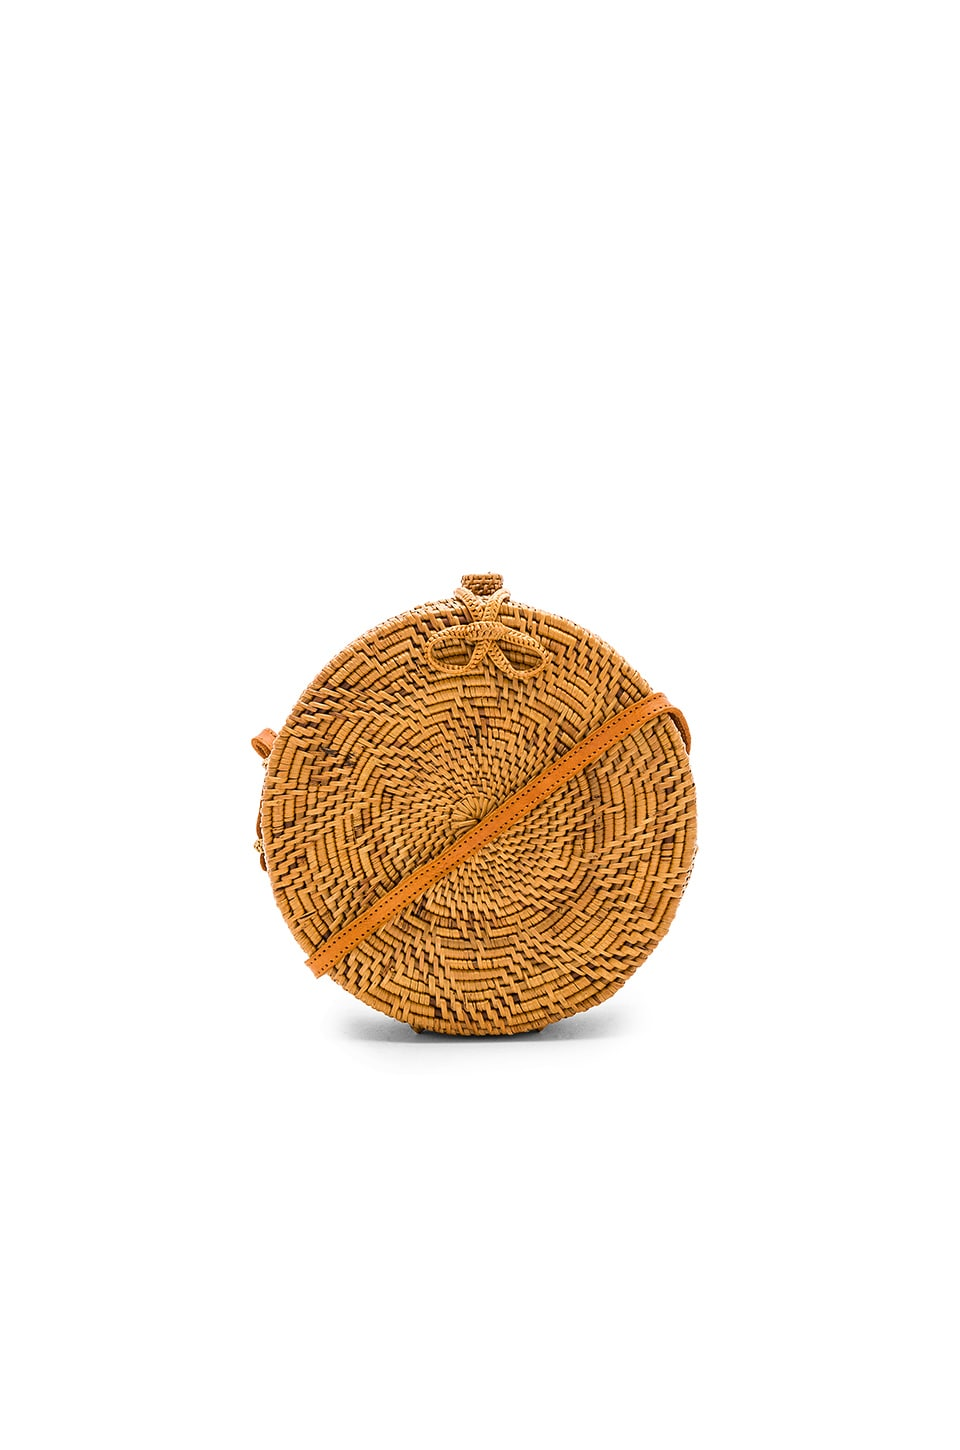 ellen & james Round Bag in Natural